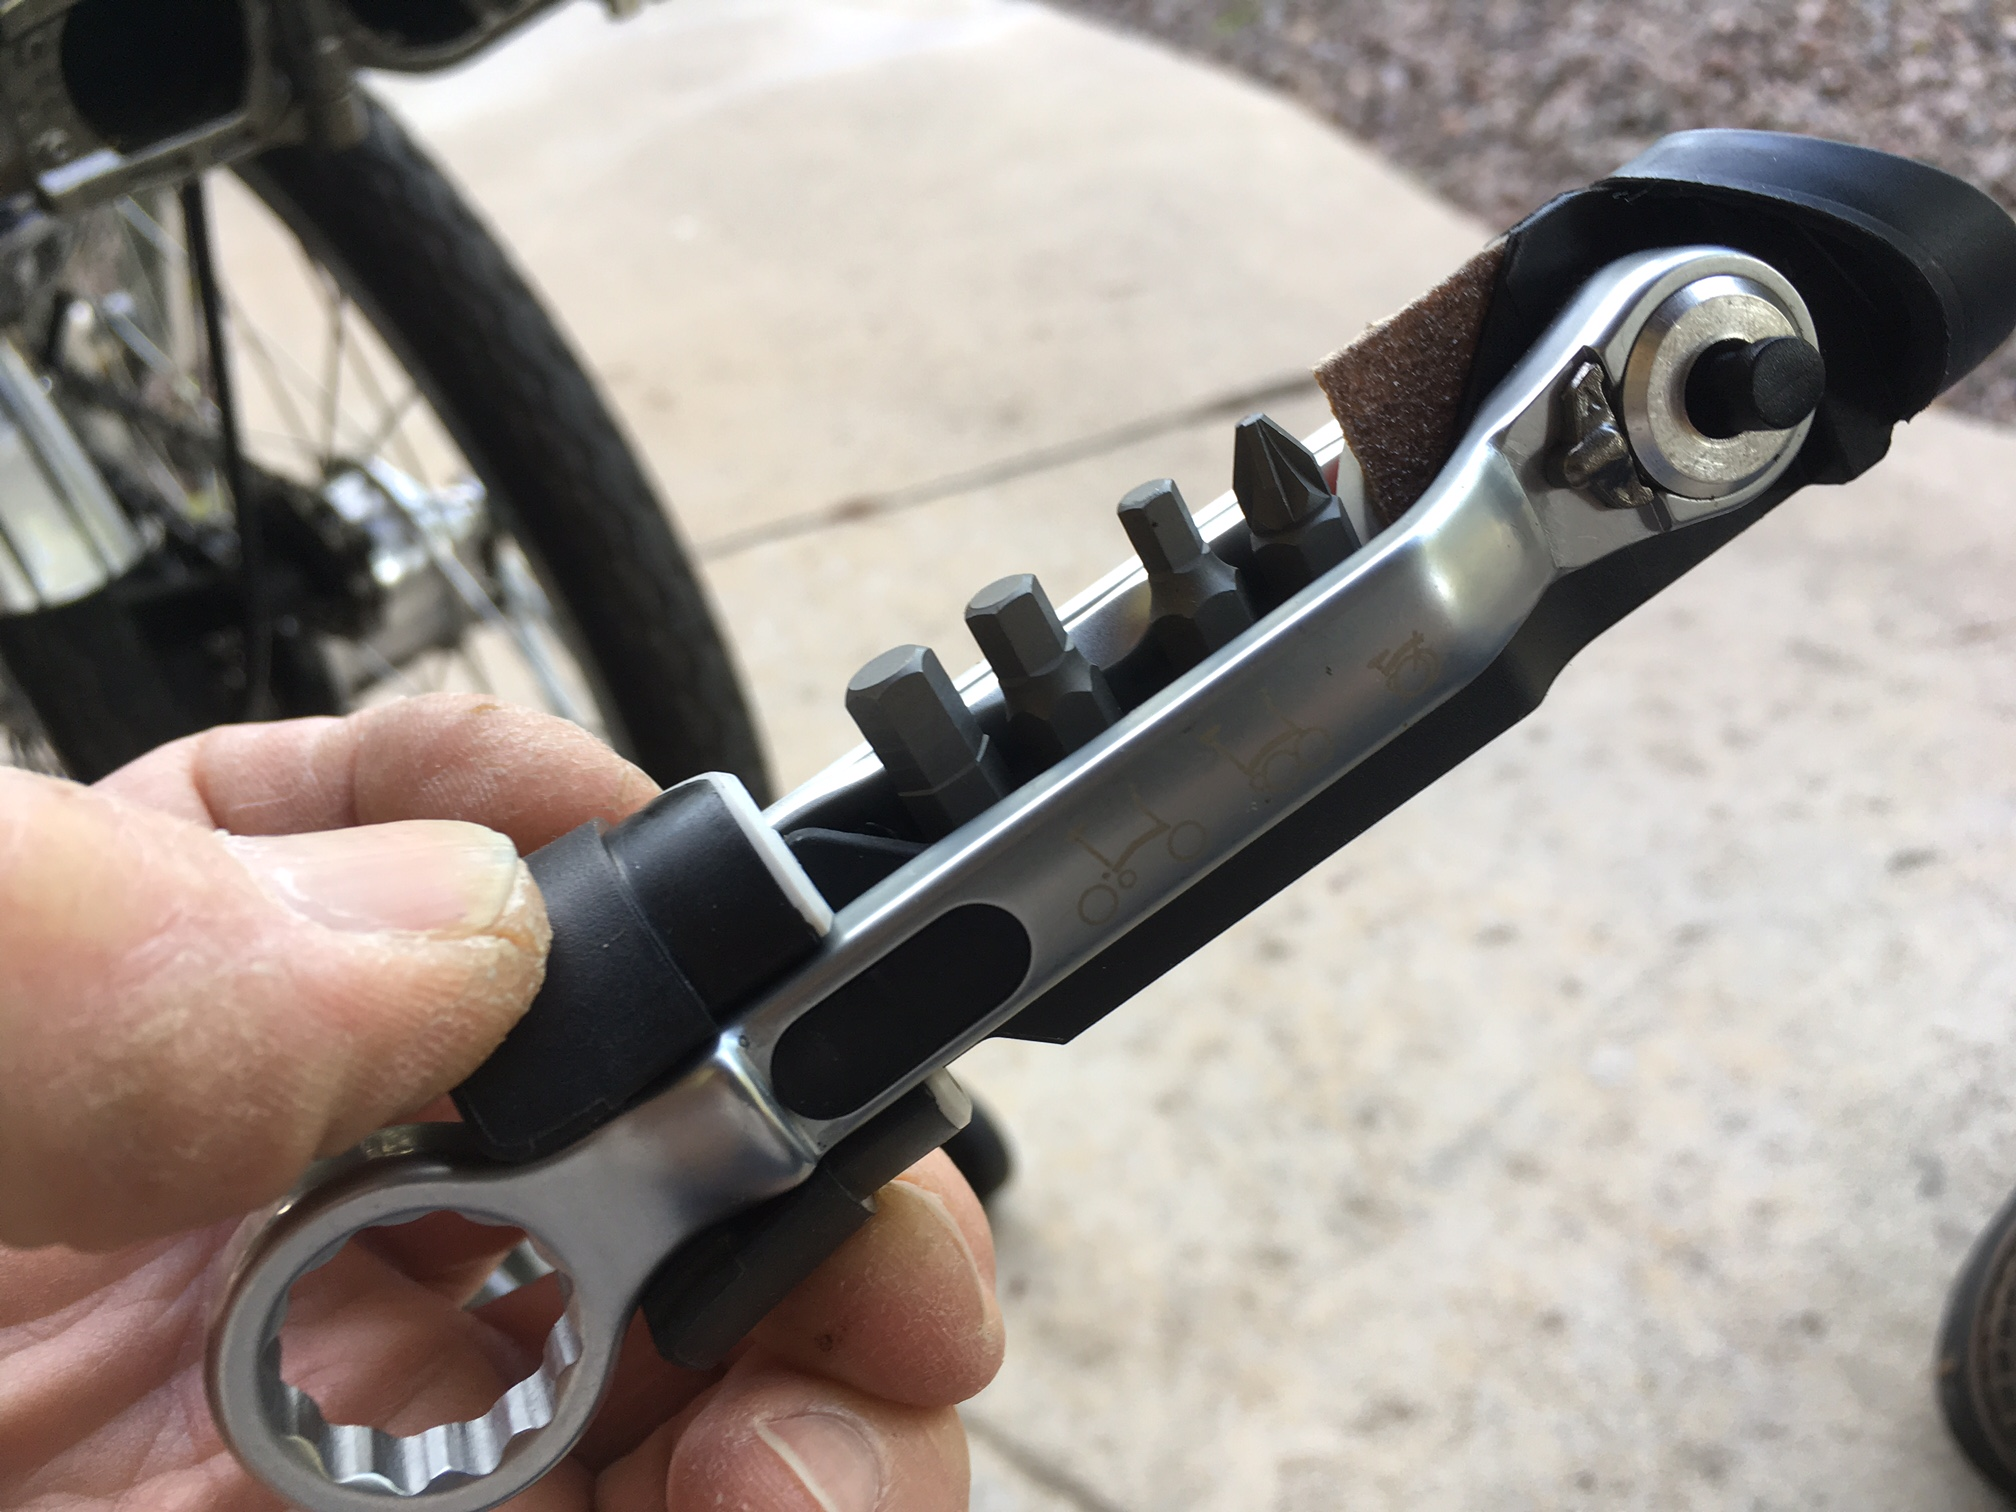 A clever, rattle-free (optional) tool kit held in with a magnet. It includes tire levers and patches.